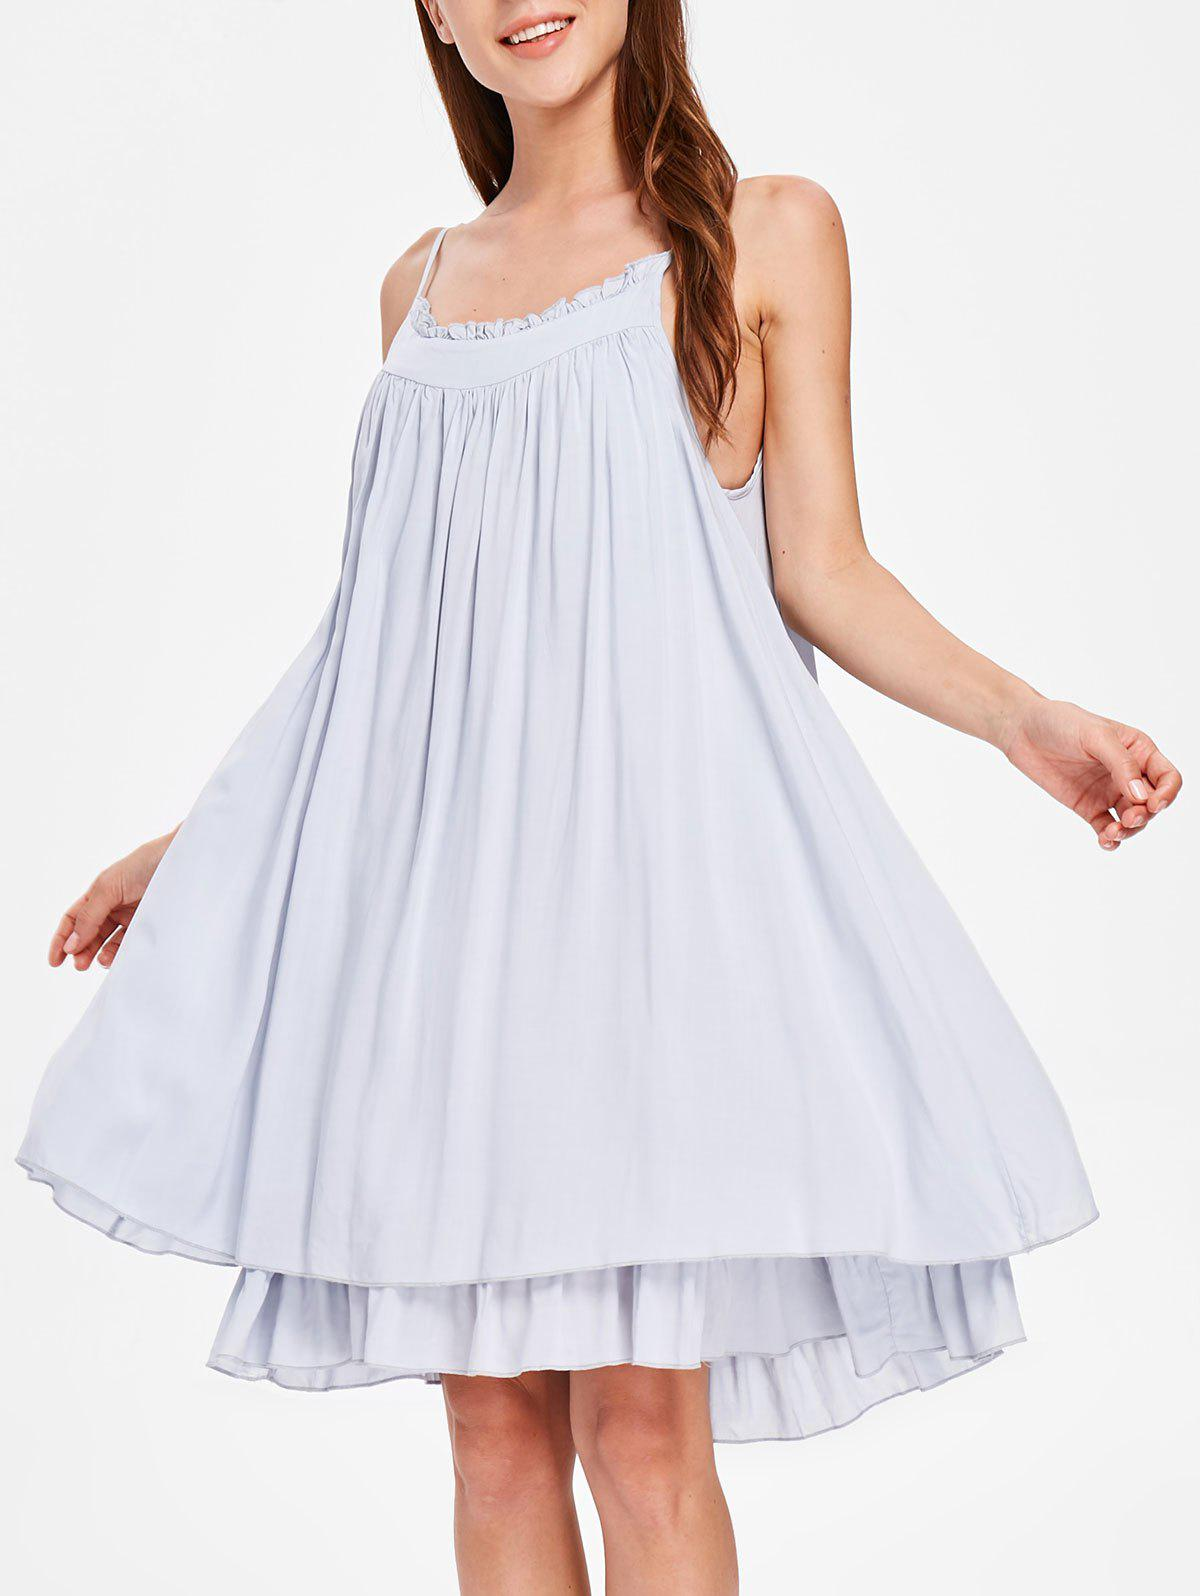 Slip Nightgown Dress